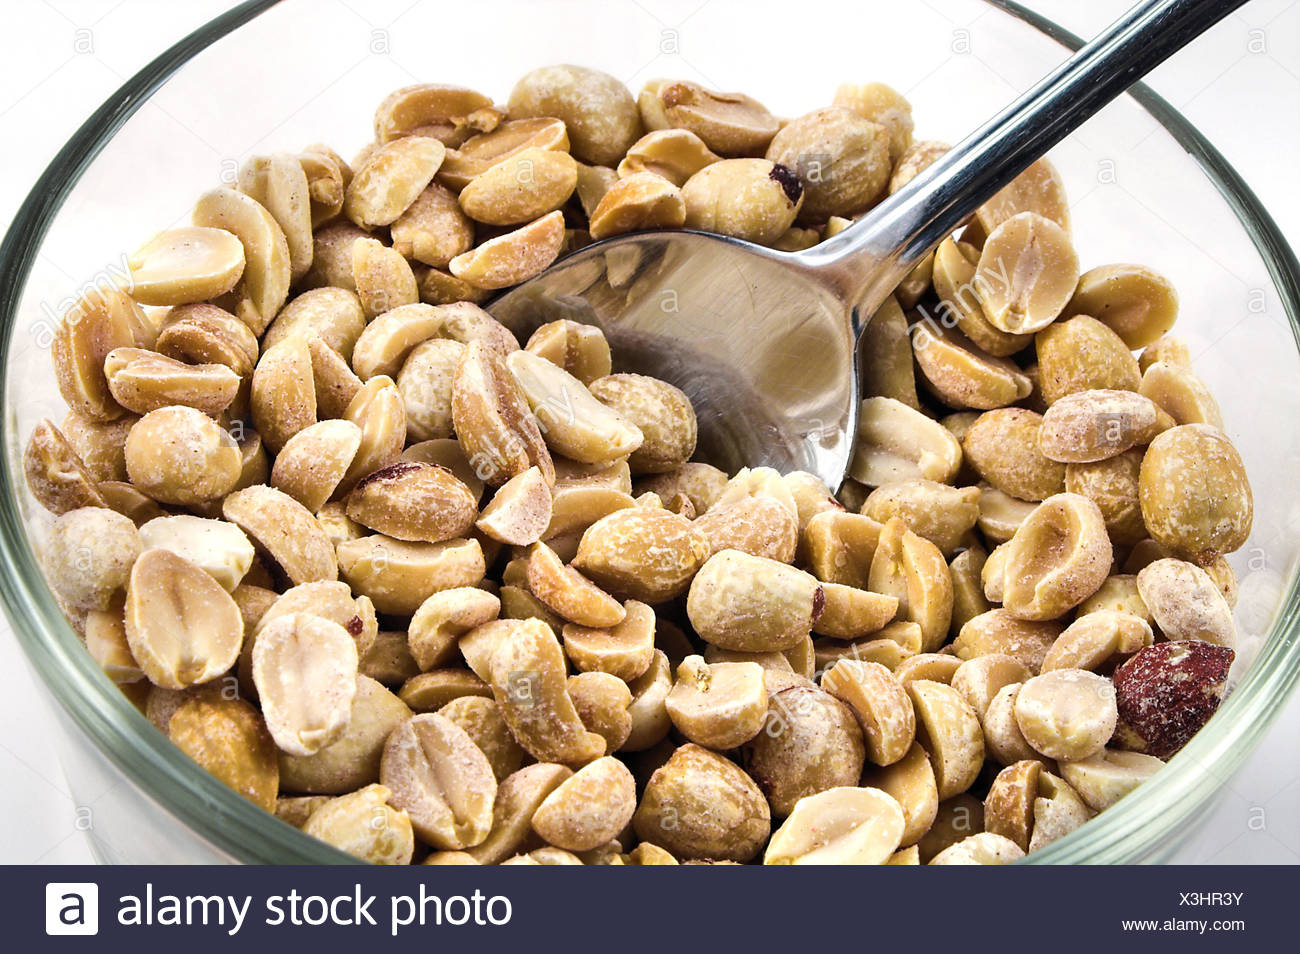 food aliment peanuts peanut dry dried up barren nutrition spoon roasted parched Stock Photo